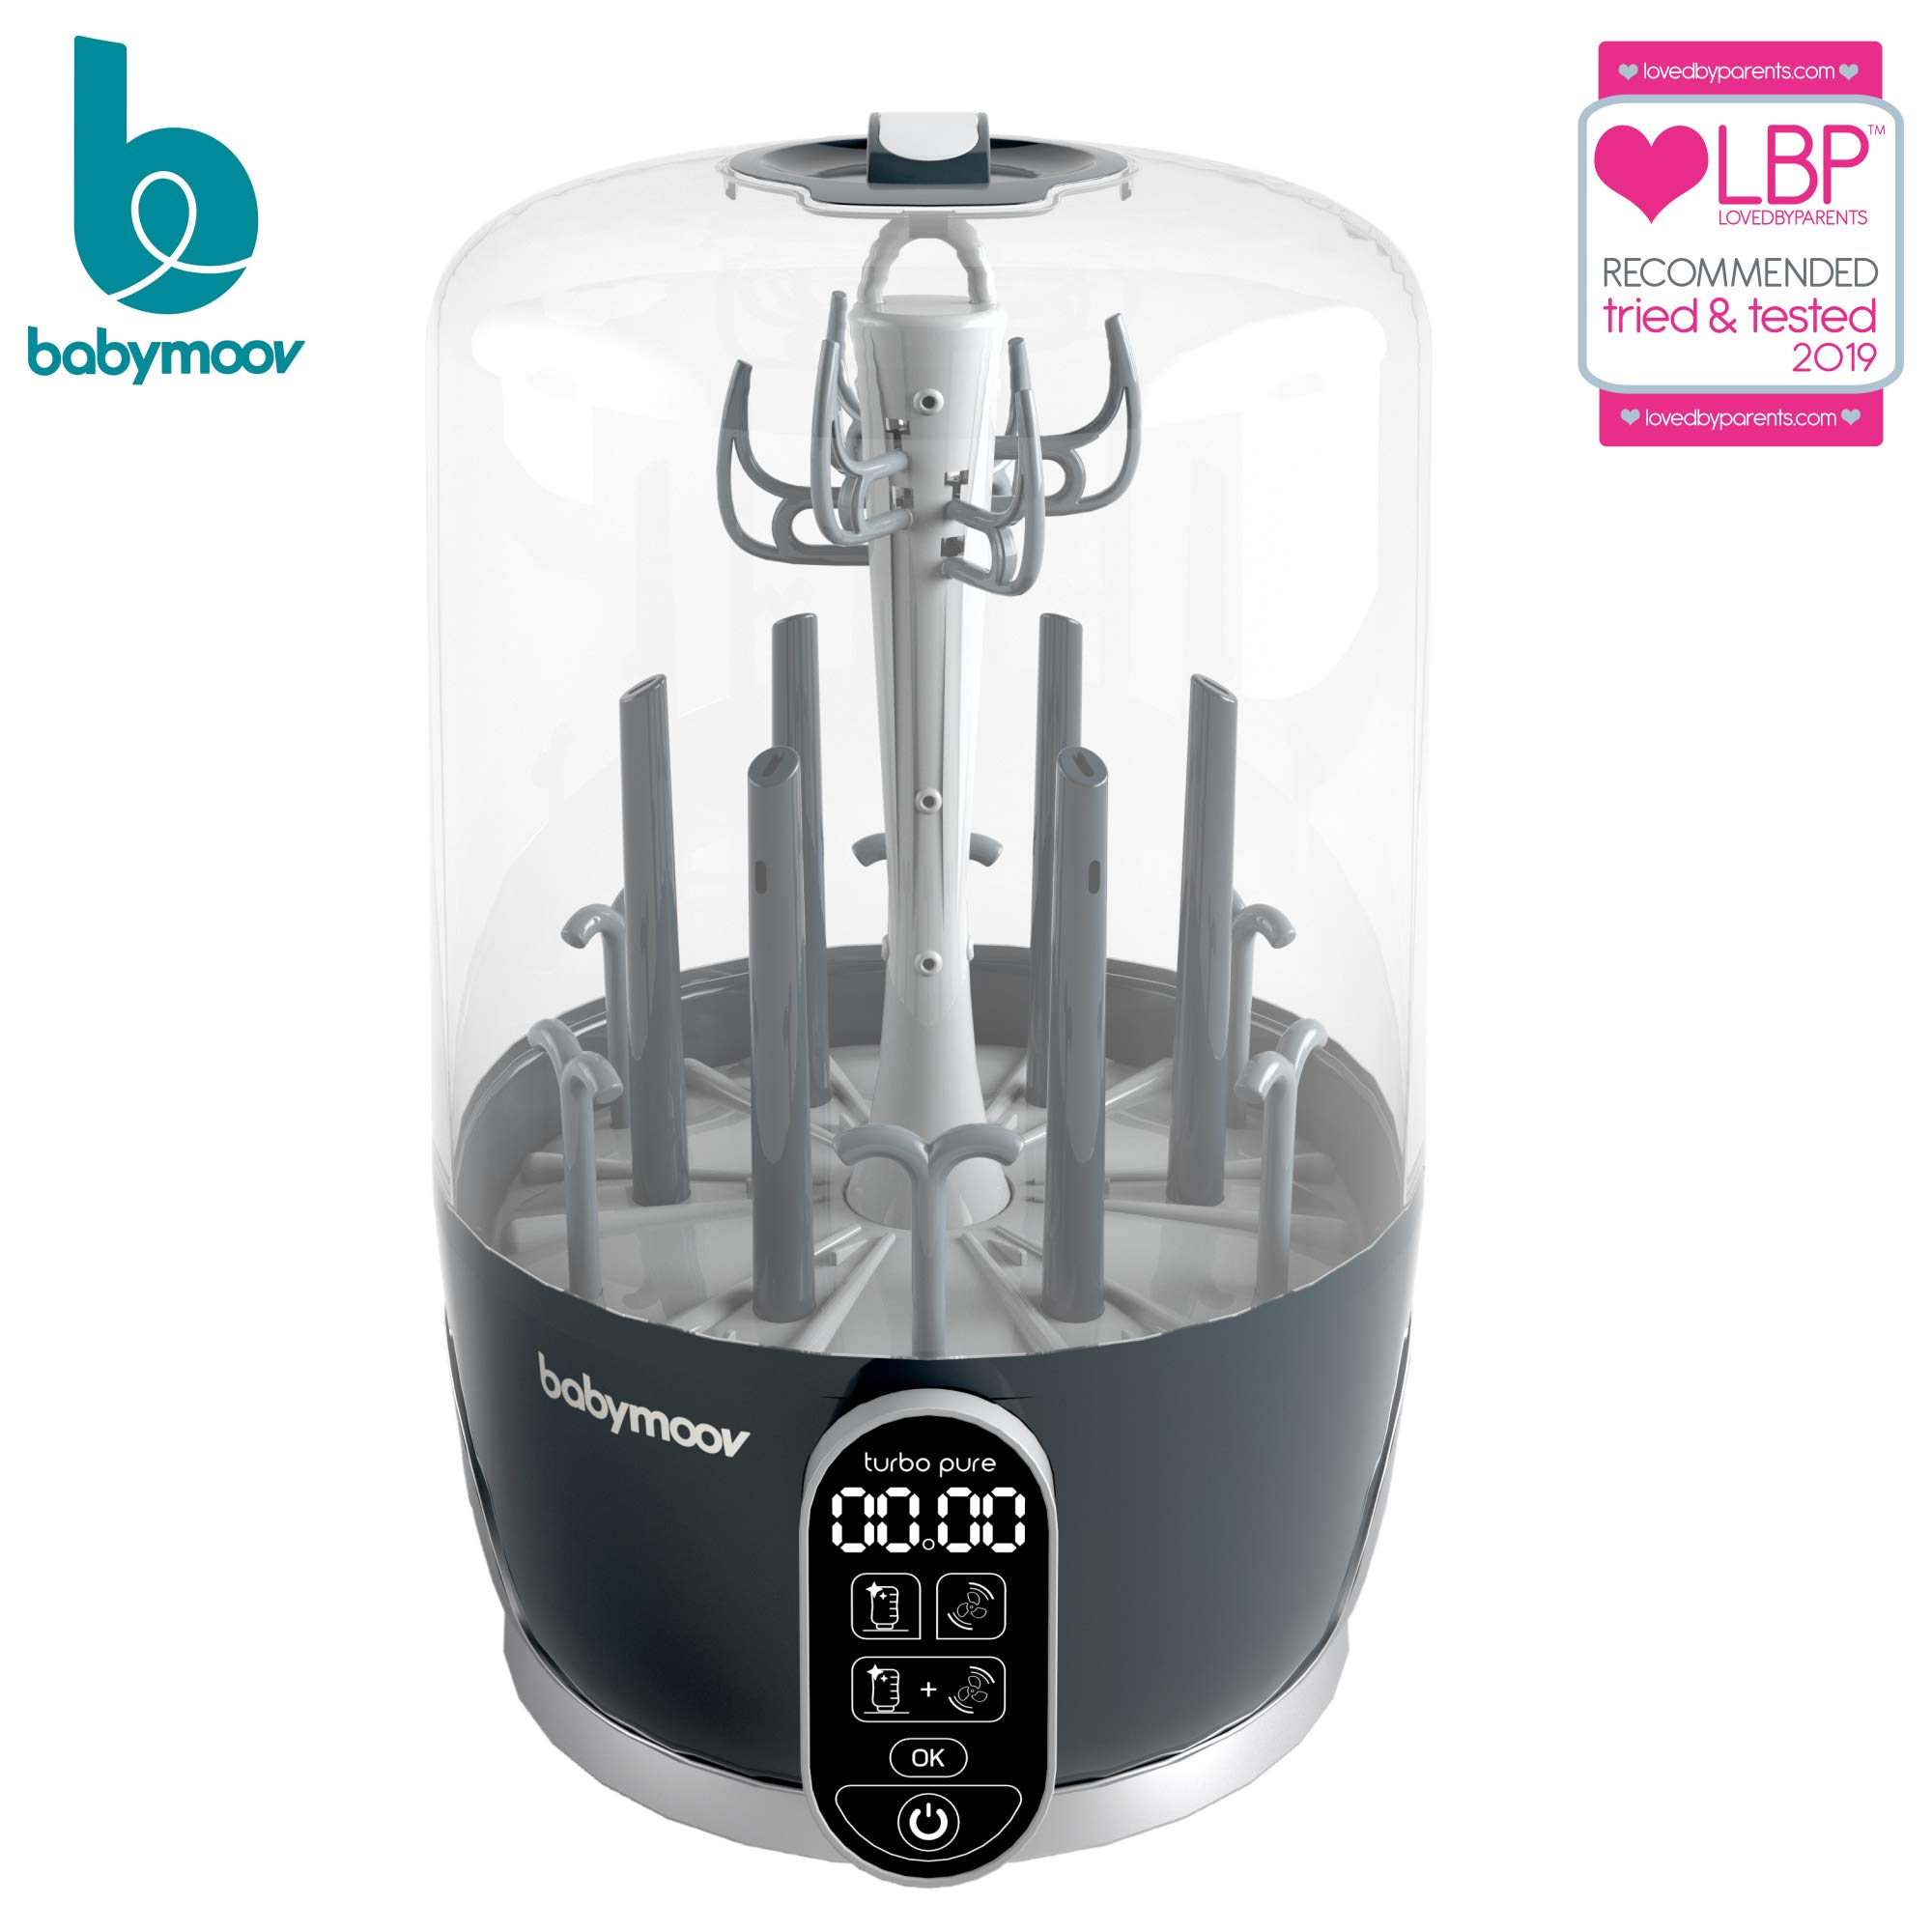 Babymoov Turbo Pure Sterilizer Dryer | Patented Purified Sterilization, Fast & Clean Drying, Bottle Storage and Easy Use (ELIMINATES 99.9% of Bacteria) by Babymoov